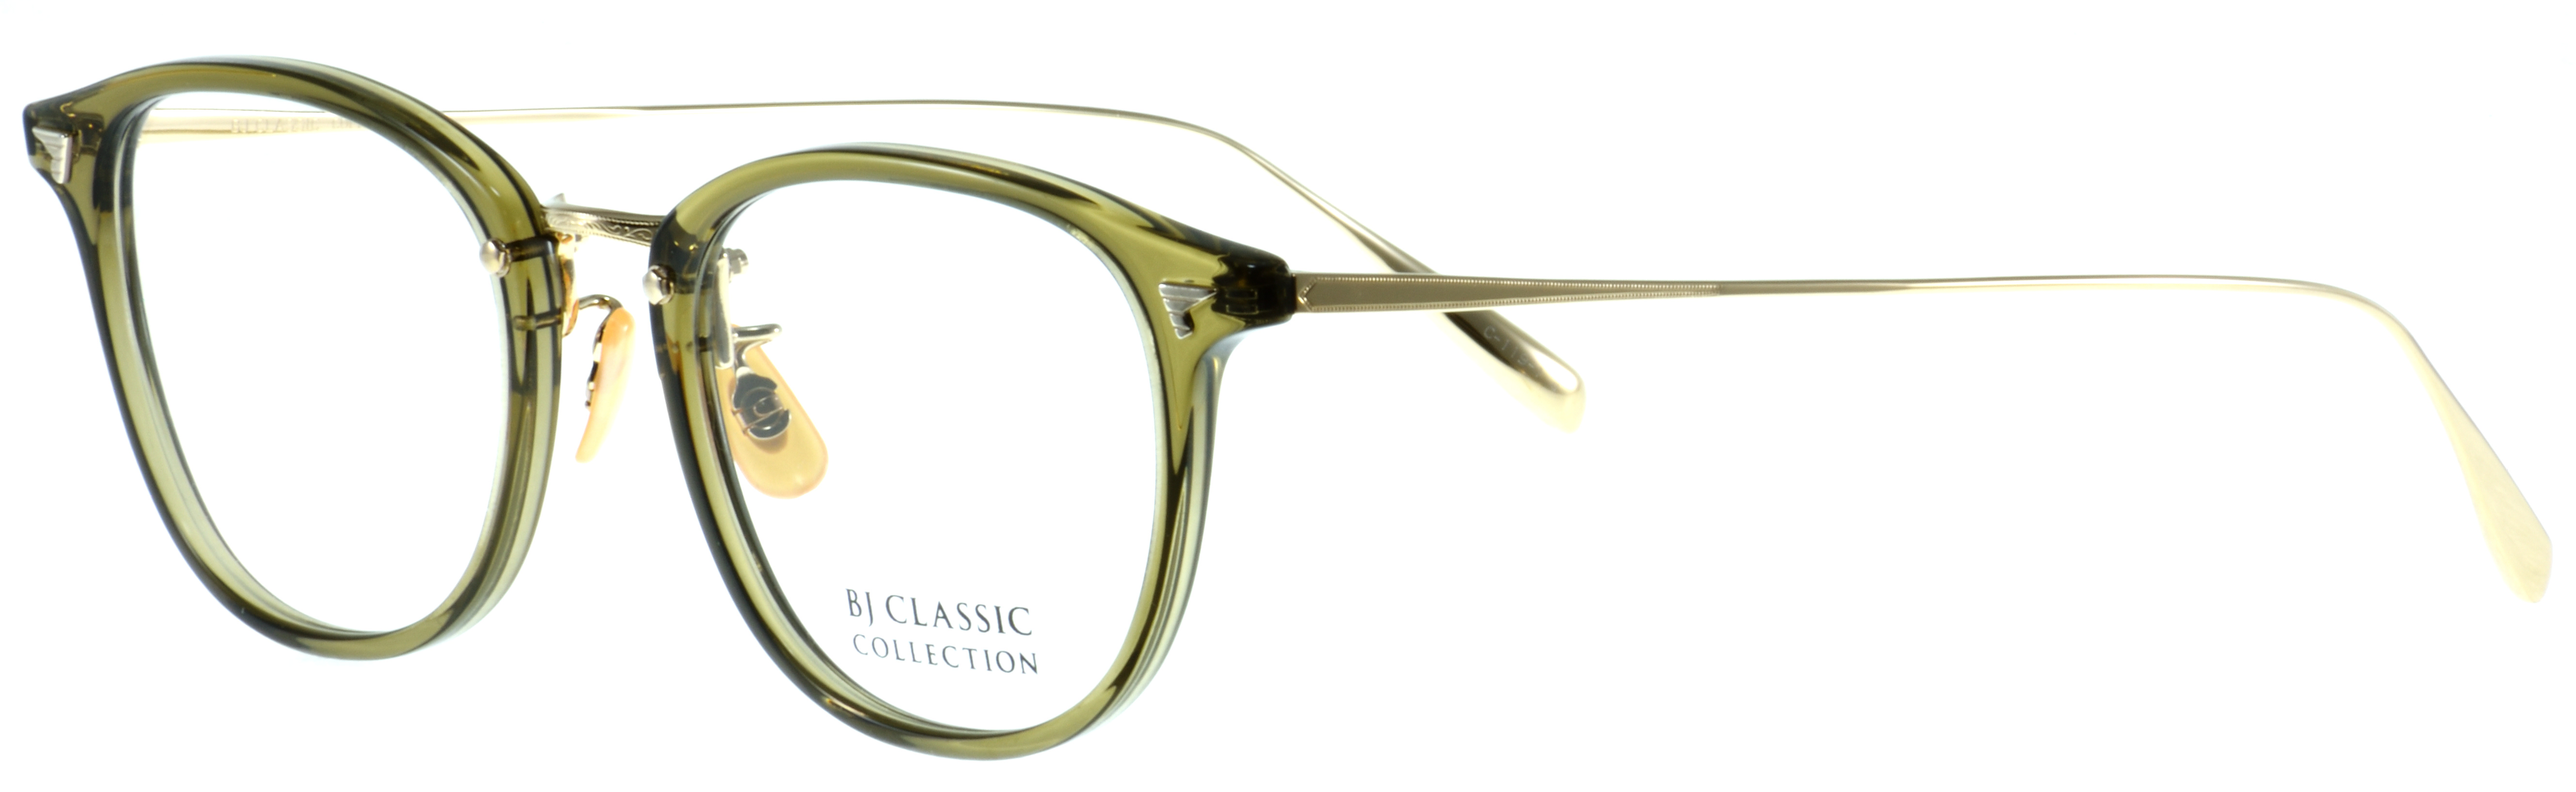 BJ CLASSIC COLLECTION COM-548NT 119 1 1070475101_00014